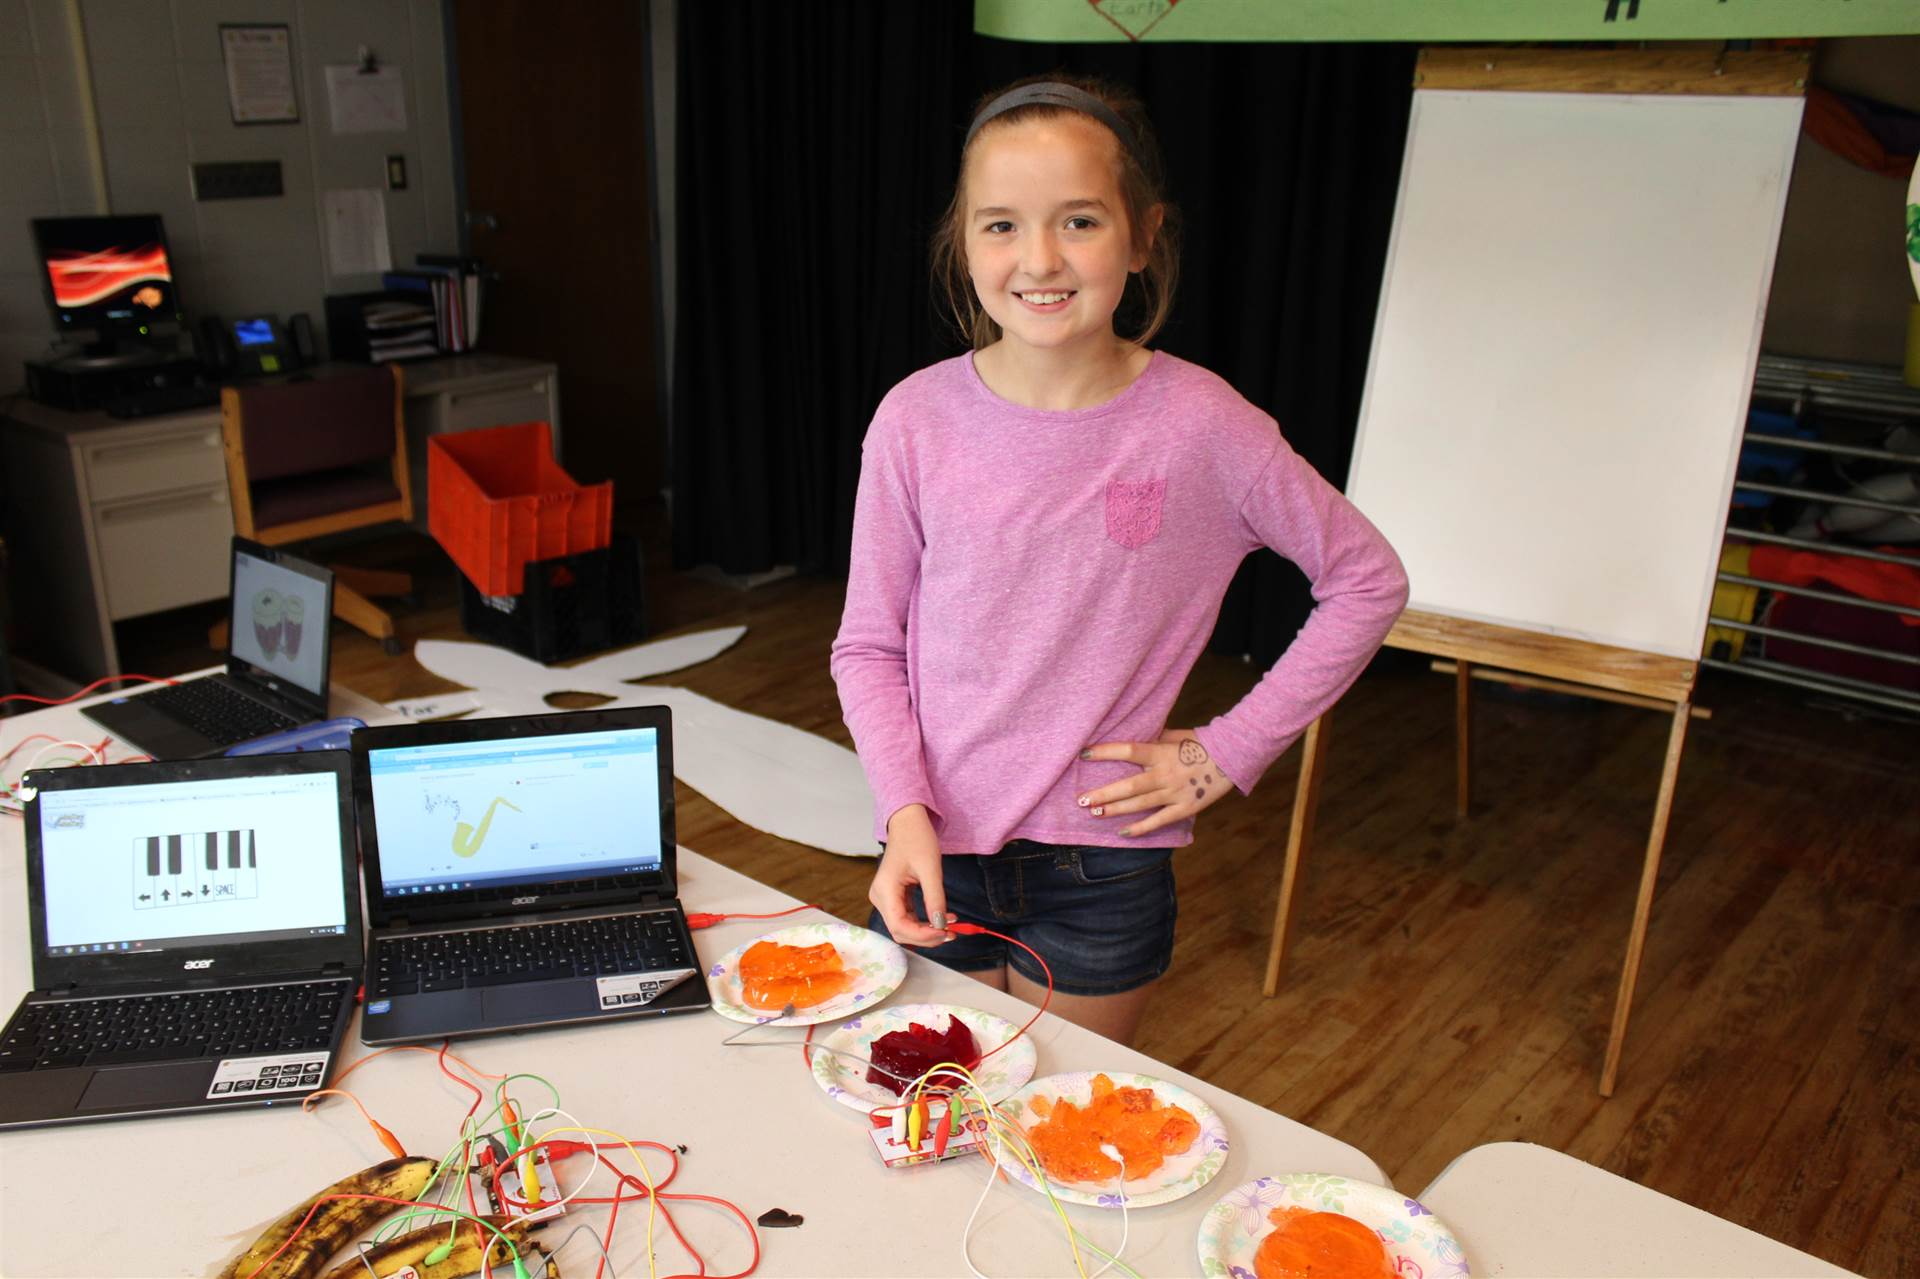 Fourth Graders use Makey Makeys to turn ordinary objects into musical instruments